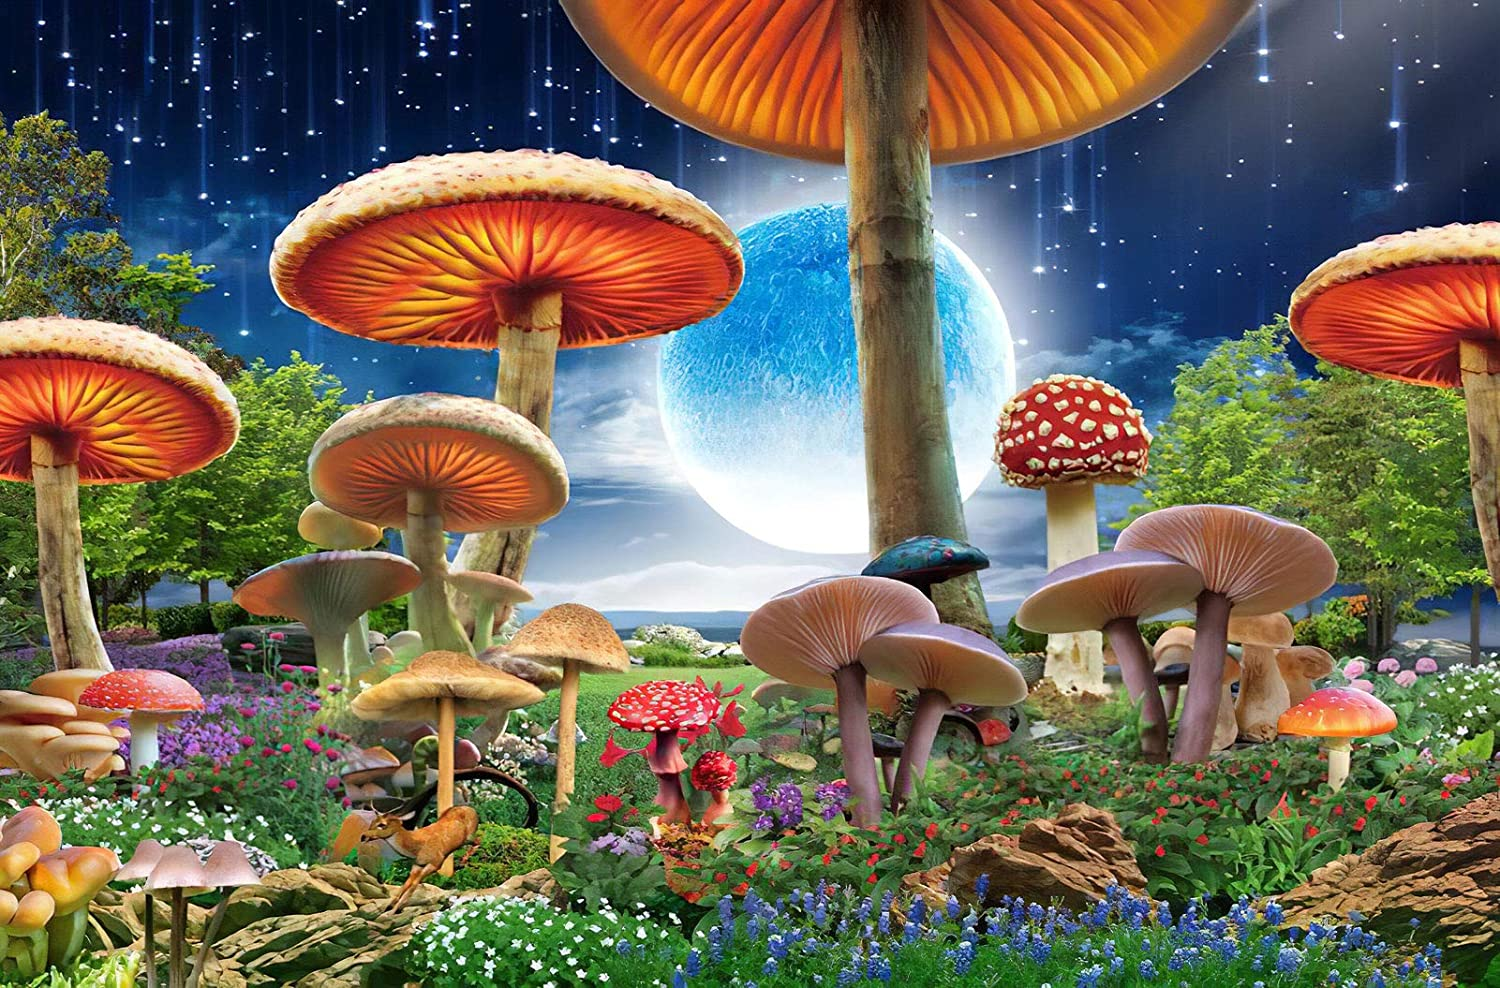 Agirlgle Jigsaw Puzzles 1000 Pieces for Adults for Kids, Mushrooms Jigsaw Puzzles - 1000 Pieces Jigsaw Puzzles,Softclick Technology Means Pieces Fit Together Perfectly